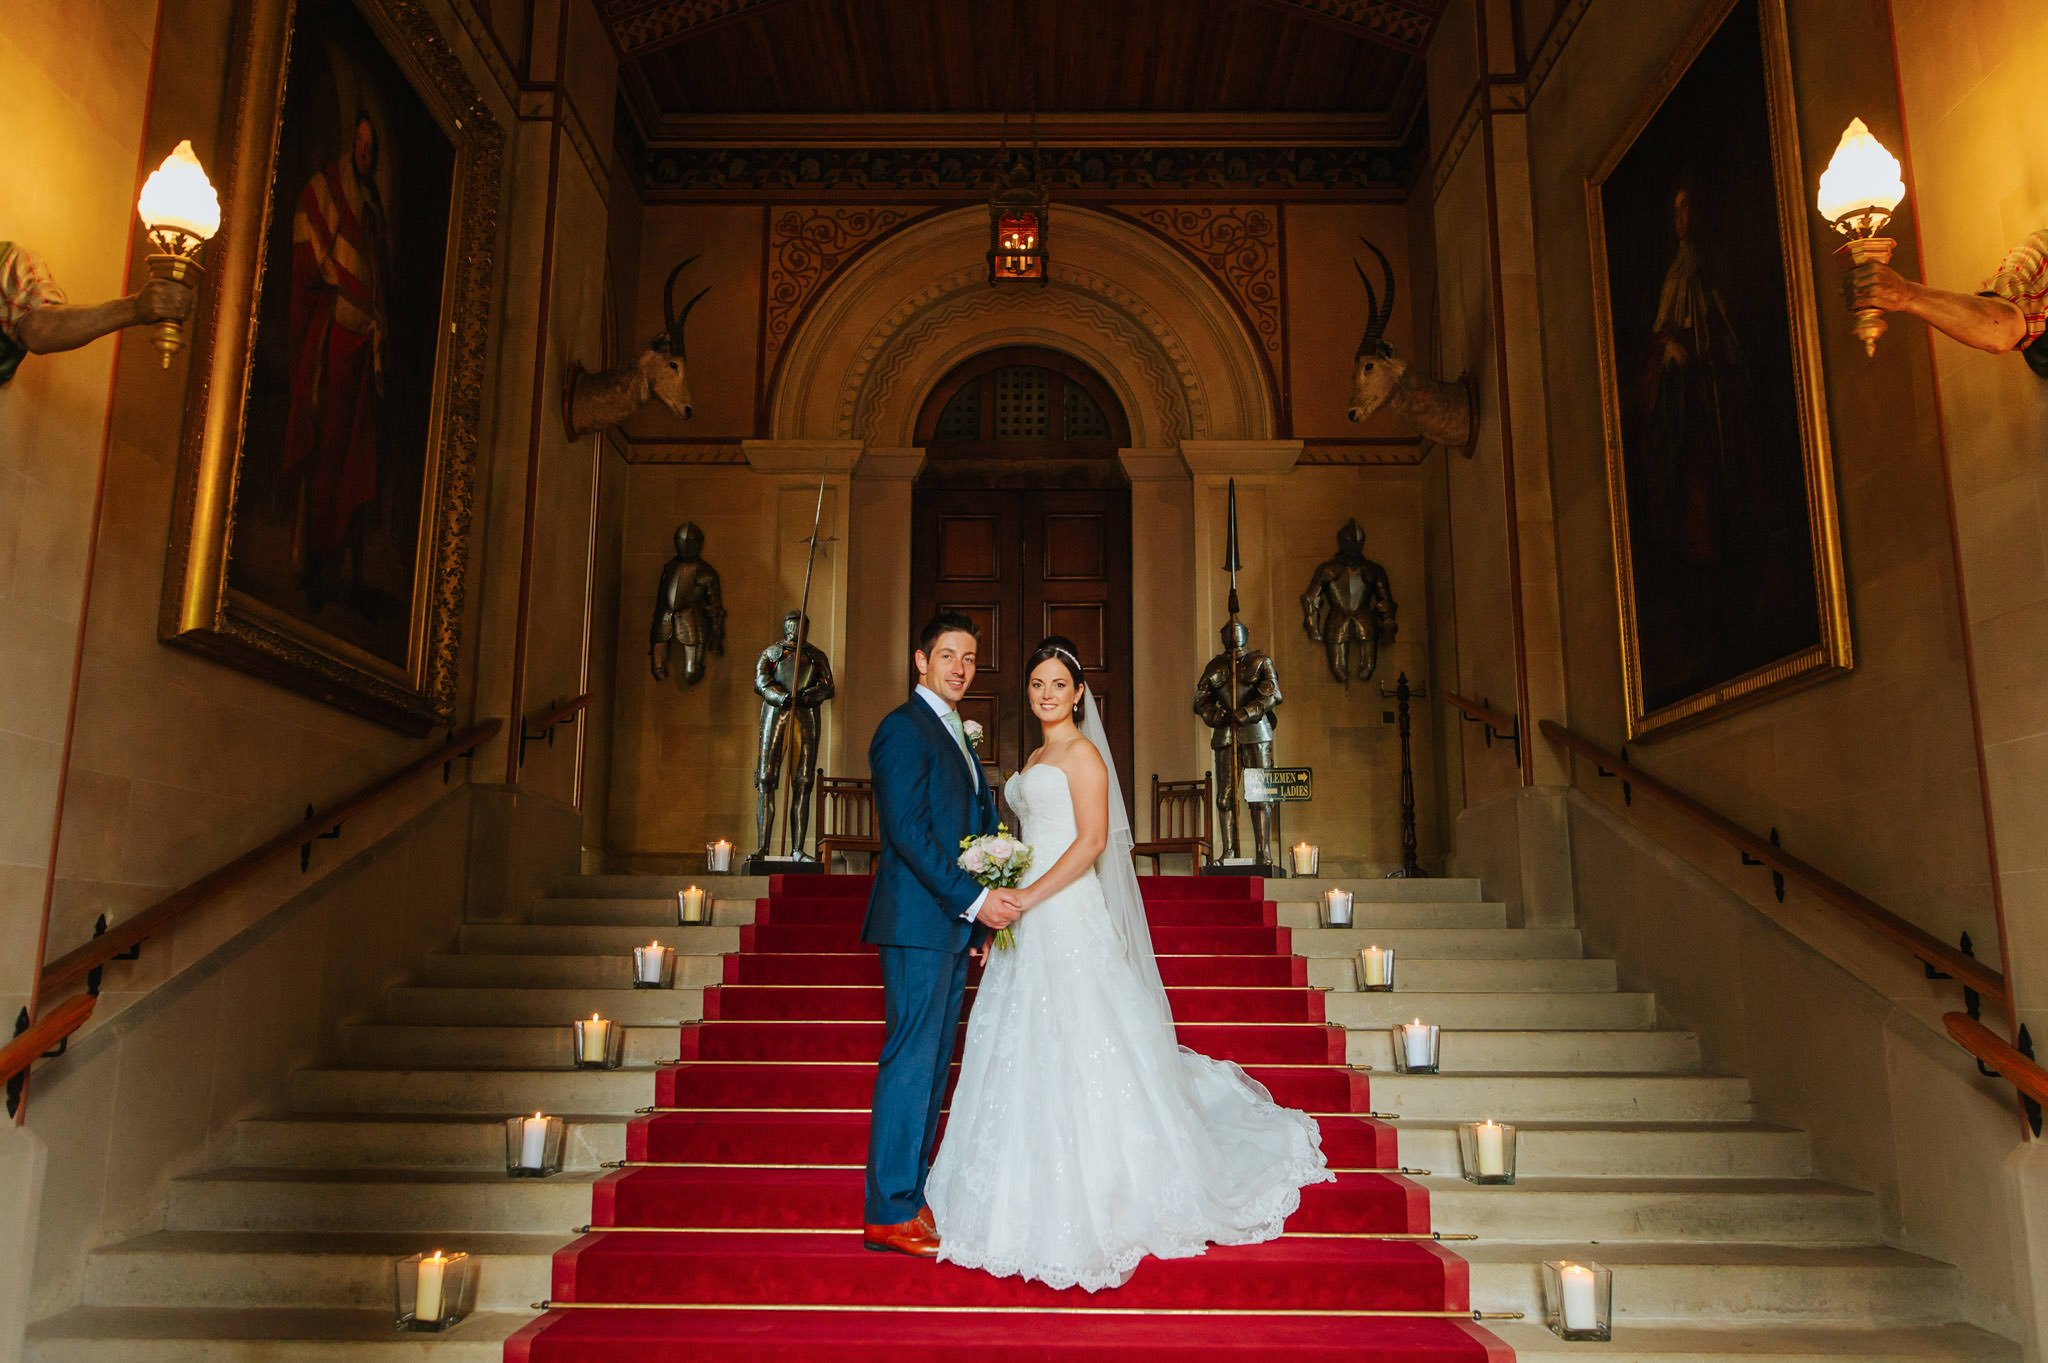 eastnor castle wedding pictures 56 - Eastnor Castle wedding photographer Herefordshire, West Midlands - Sarah + Dean